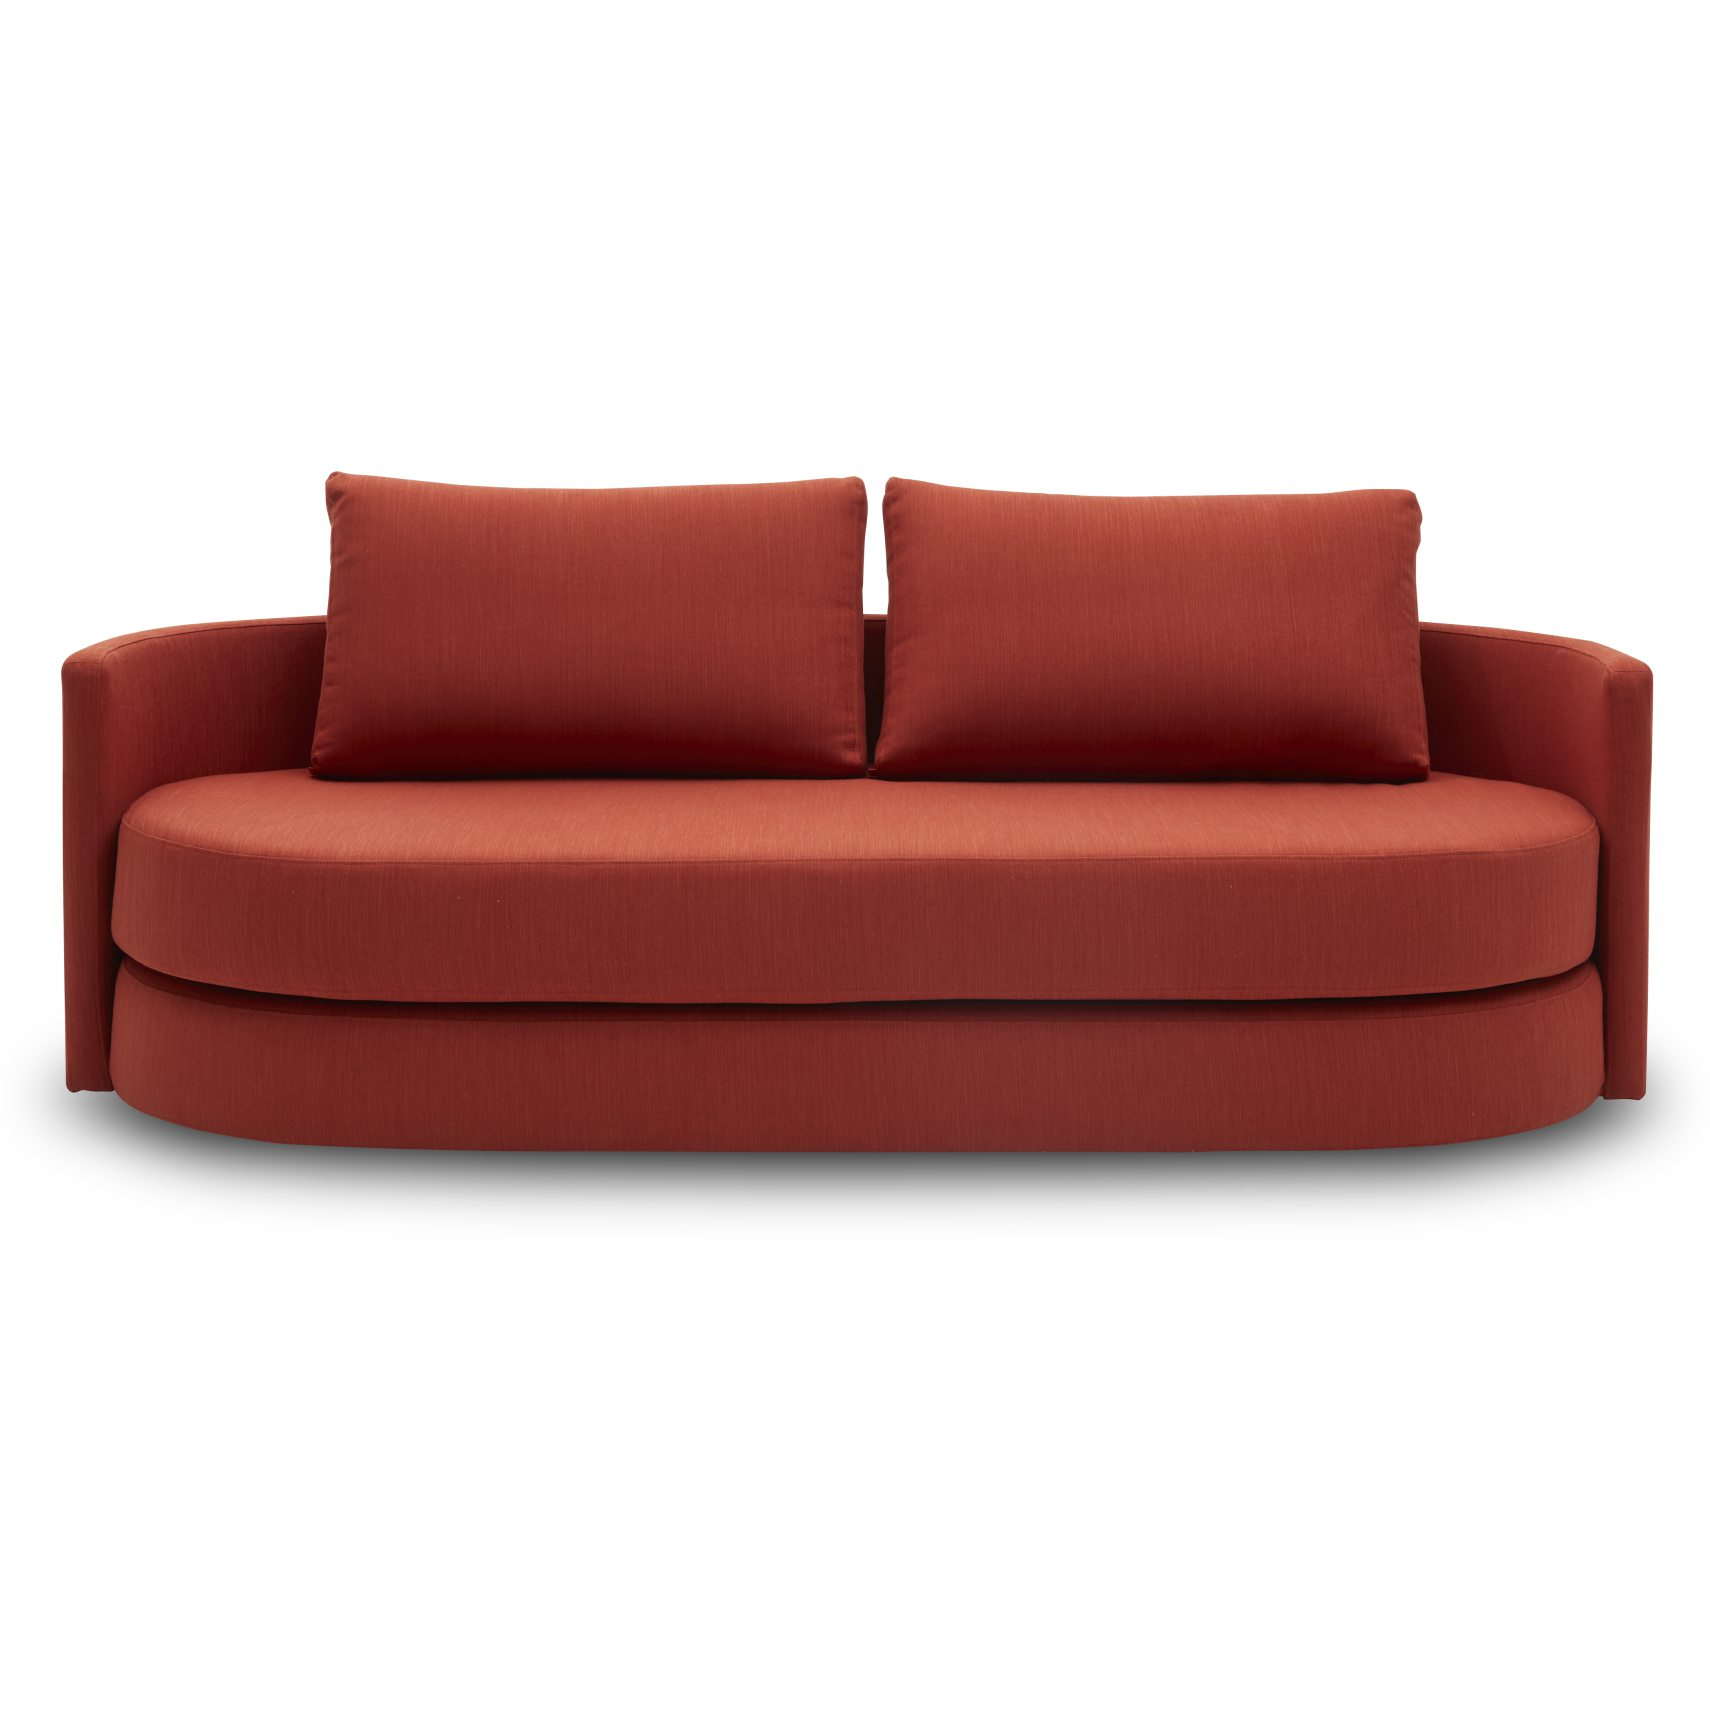 Innovation Living - Vile Sovesofa - Elegance 506 Paprika stof og pocketspring madras